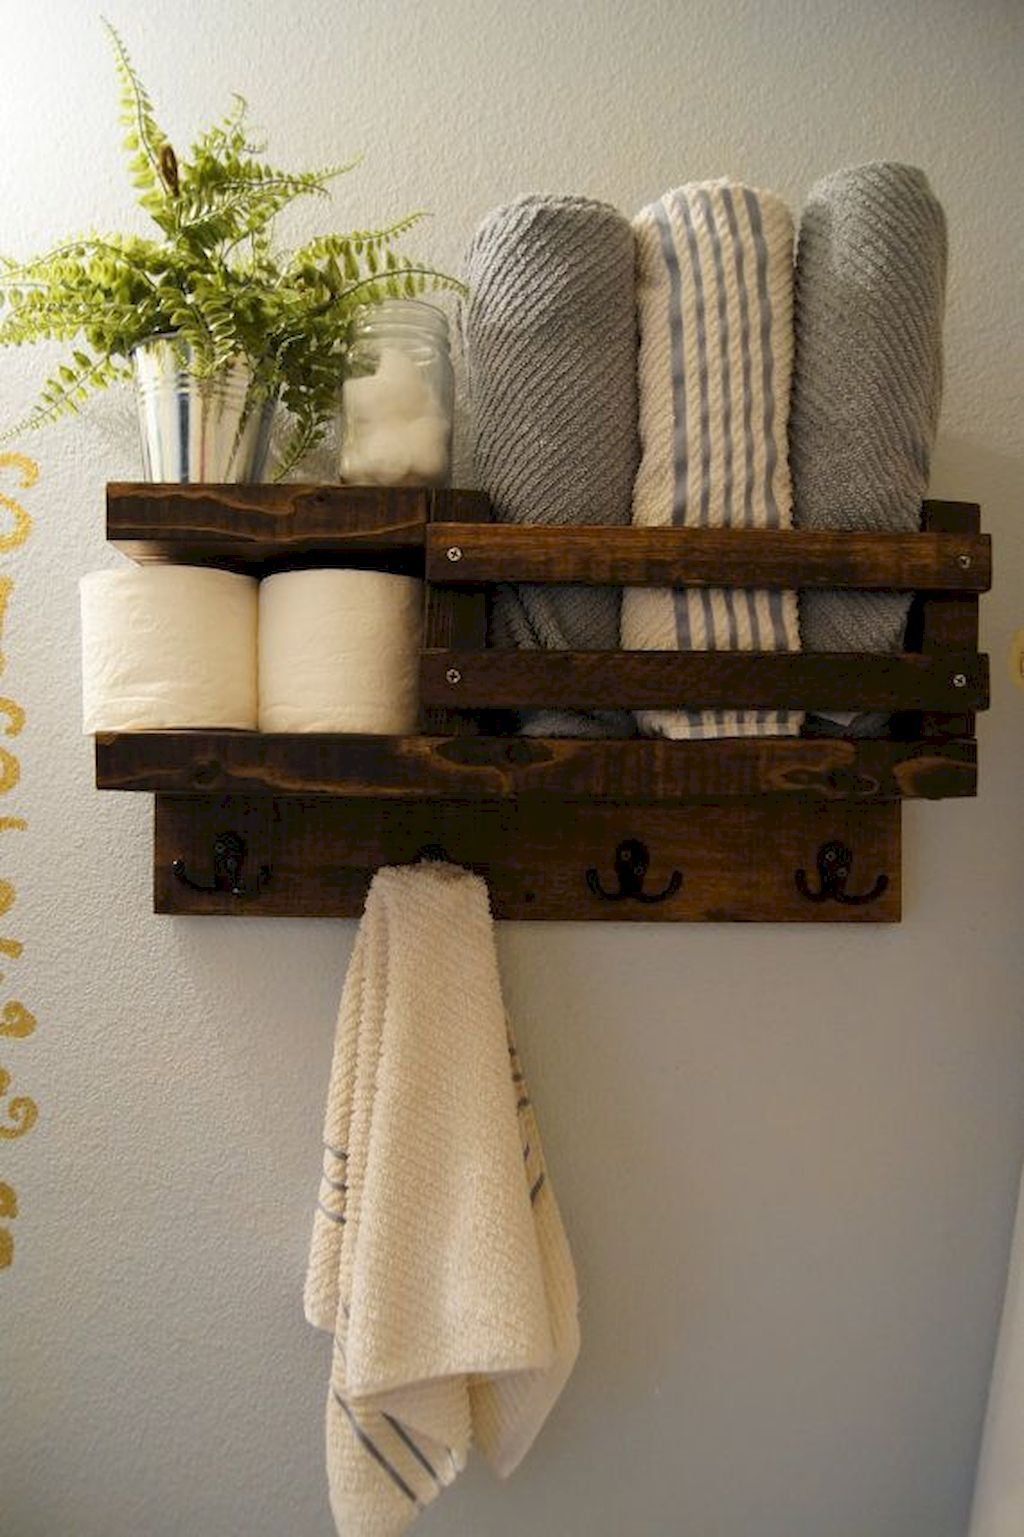 75 Beautiful Farmhouse Bathroom Decor Ideas #bathroomdecoration